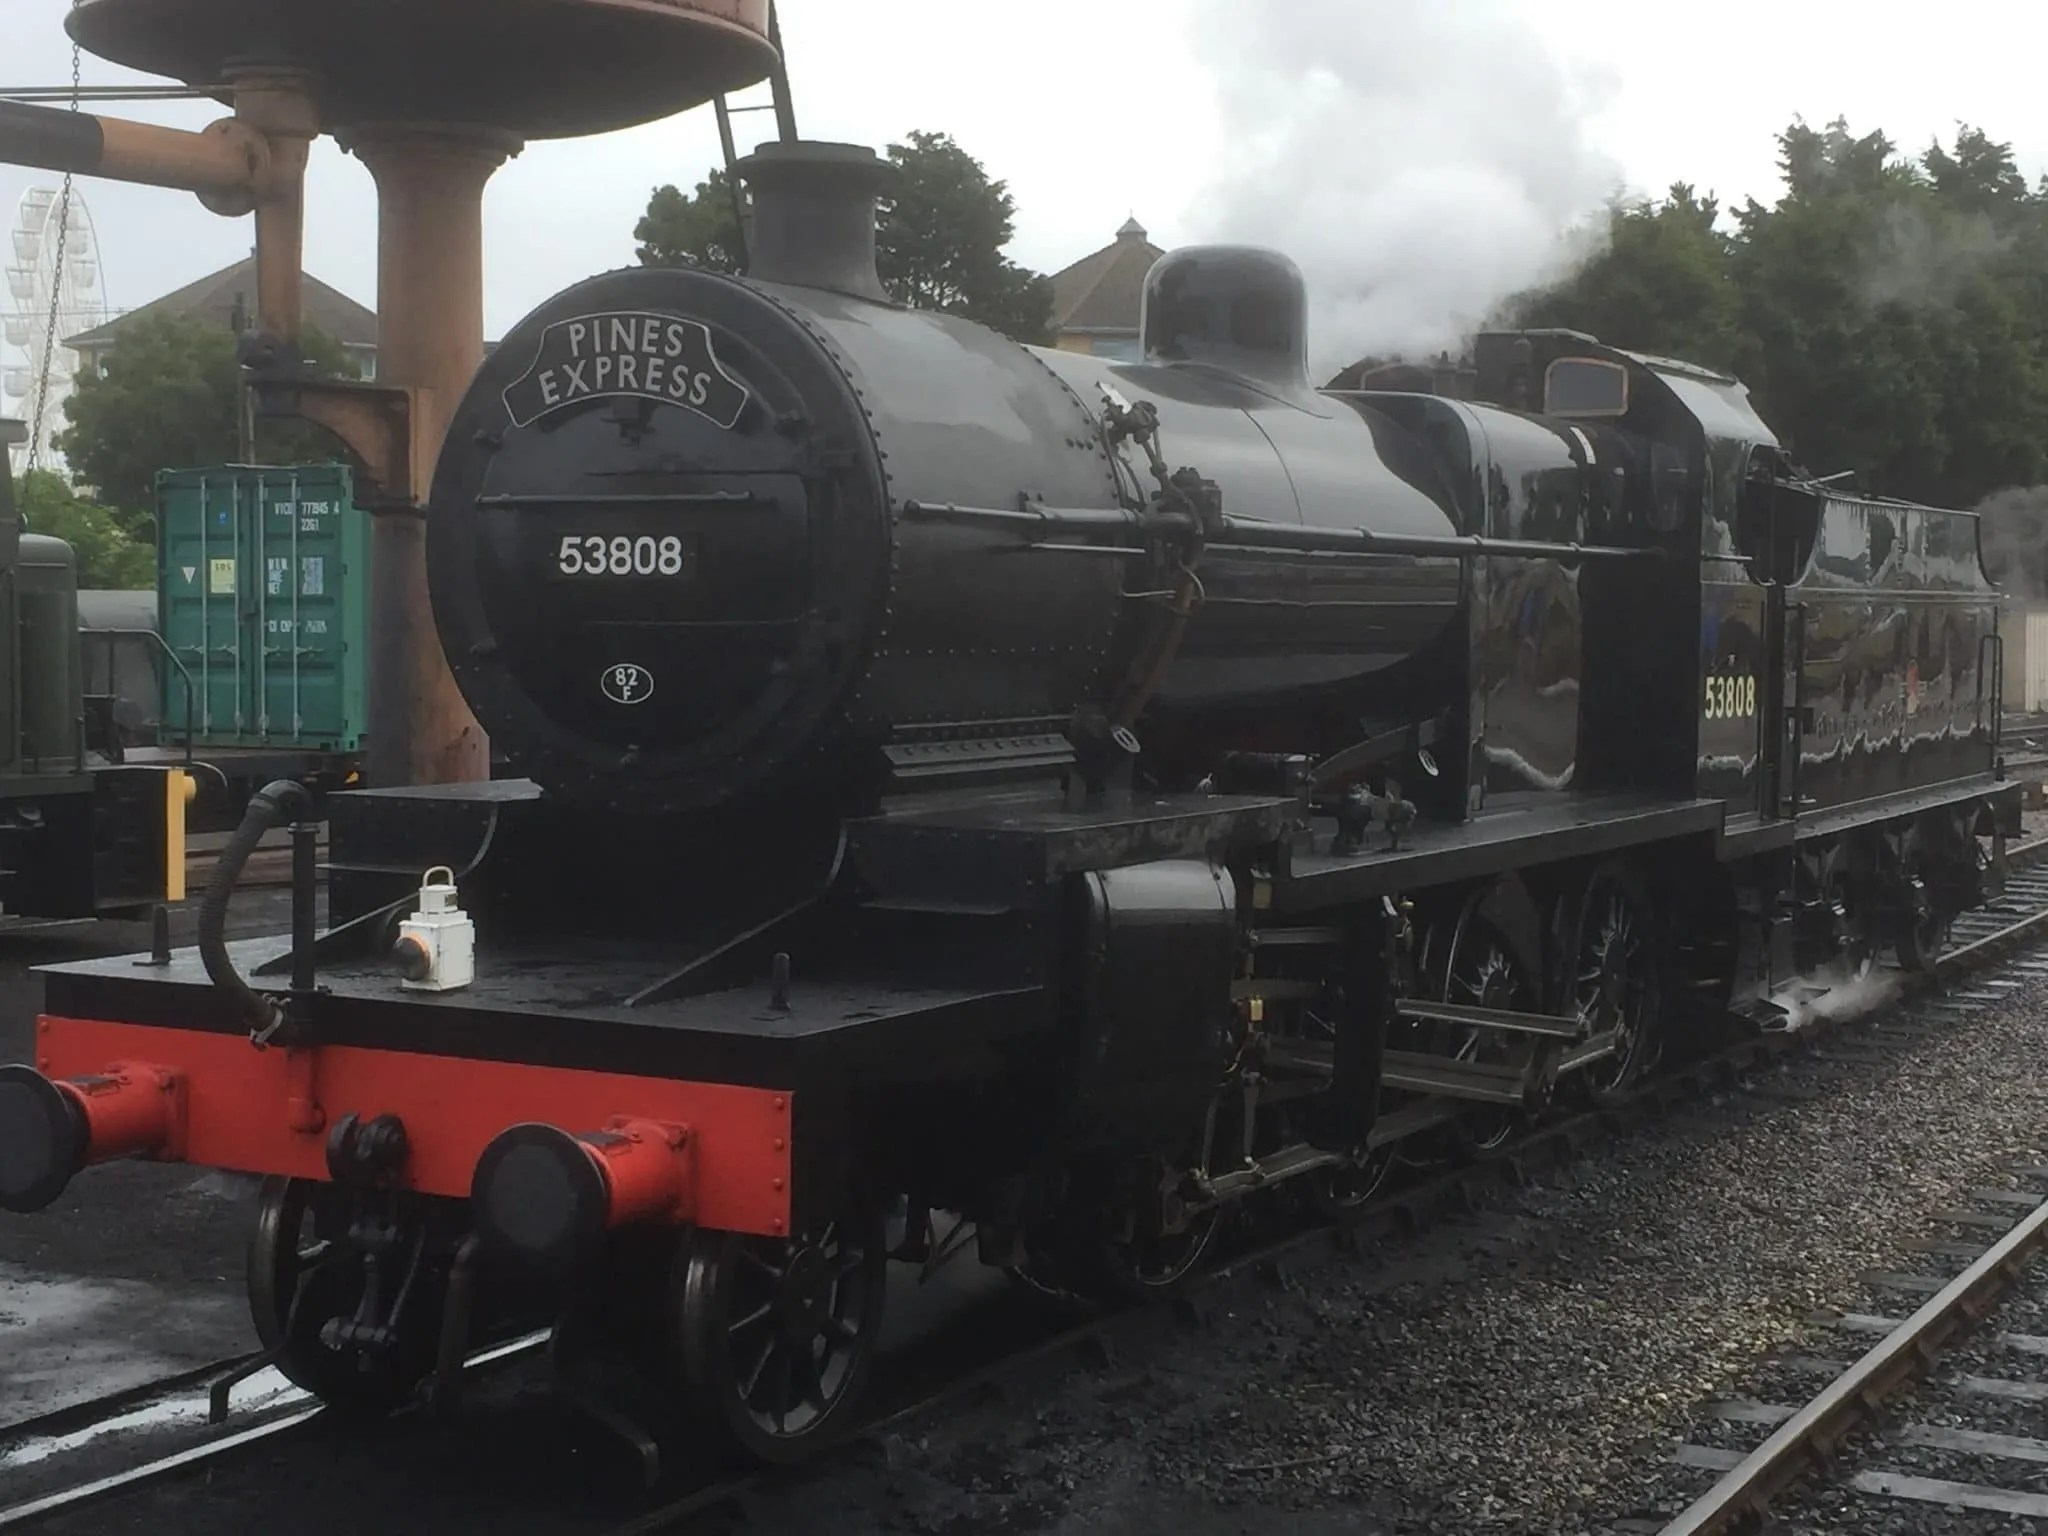 Steam locomotive 7f 53808 about to work the Pines Express on the West Somerset Railway